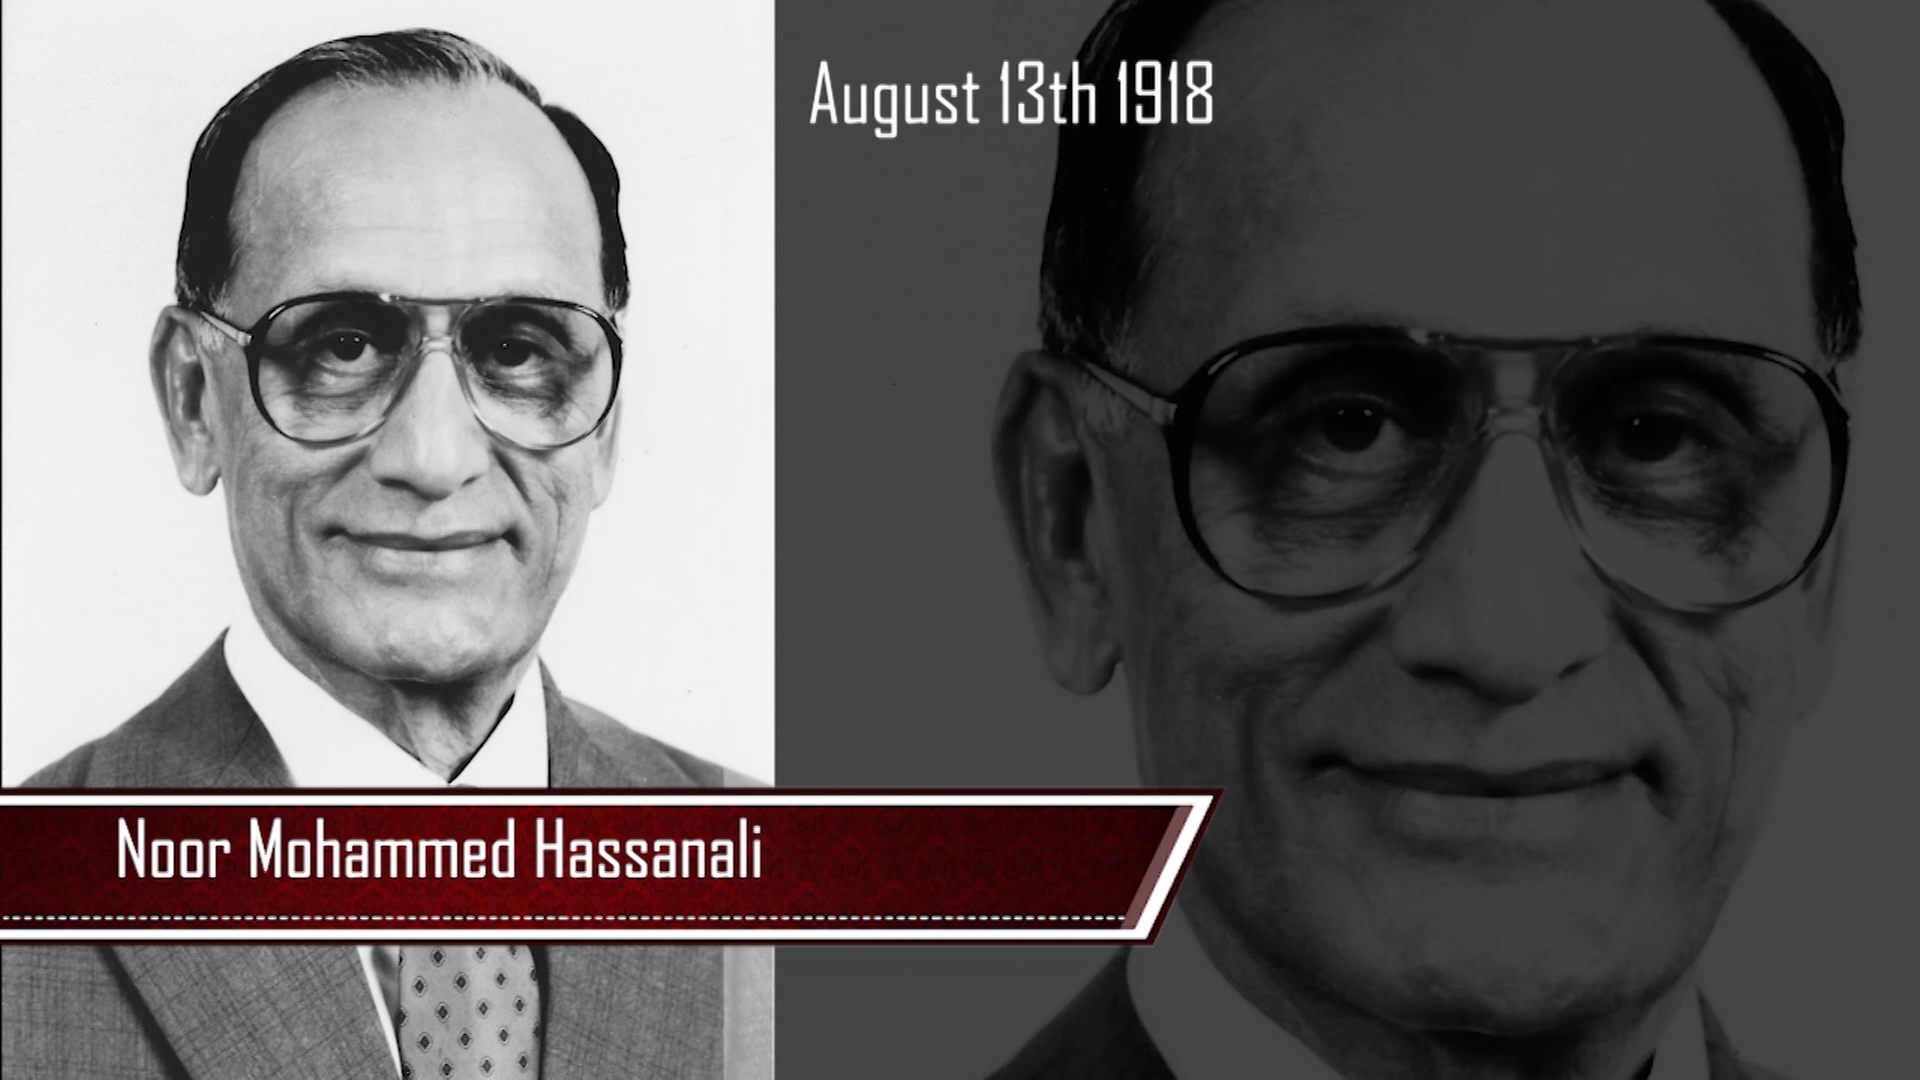 PRESIDENTS OF THE PAST – Mr. Noor Mohammed Hassanali